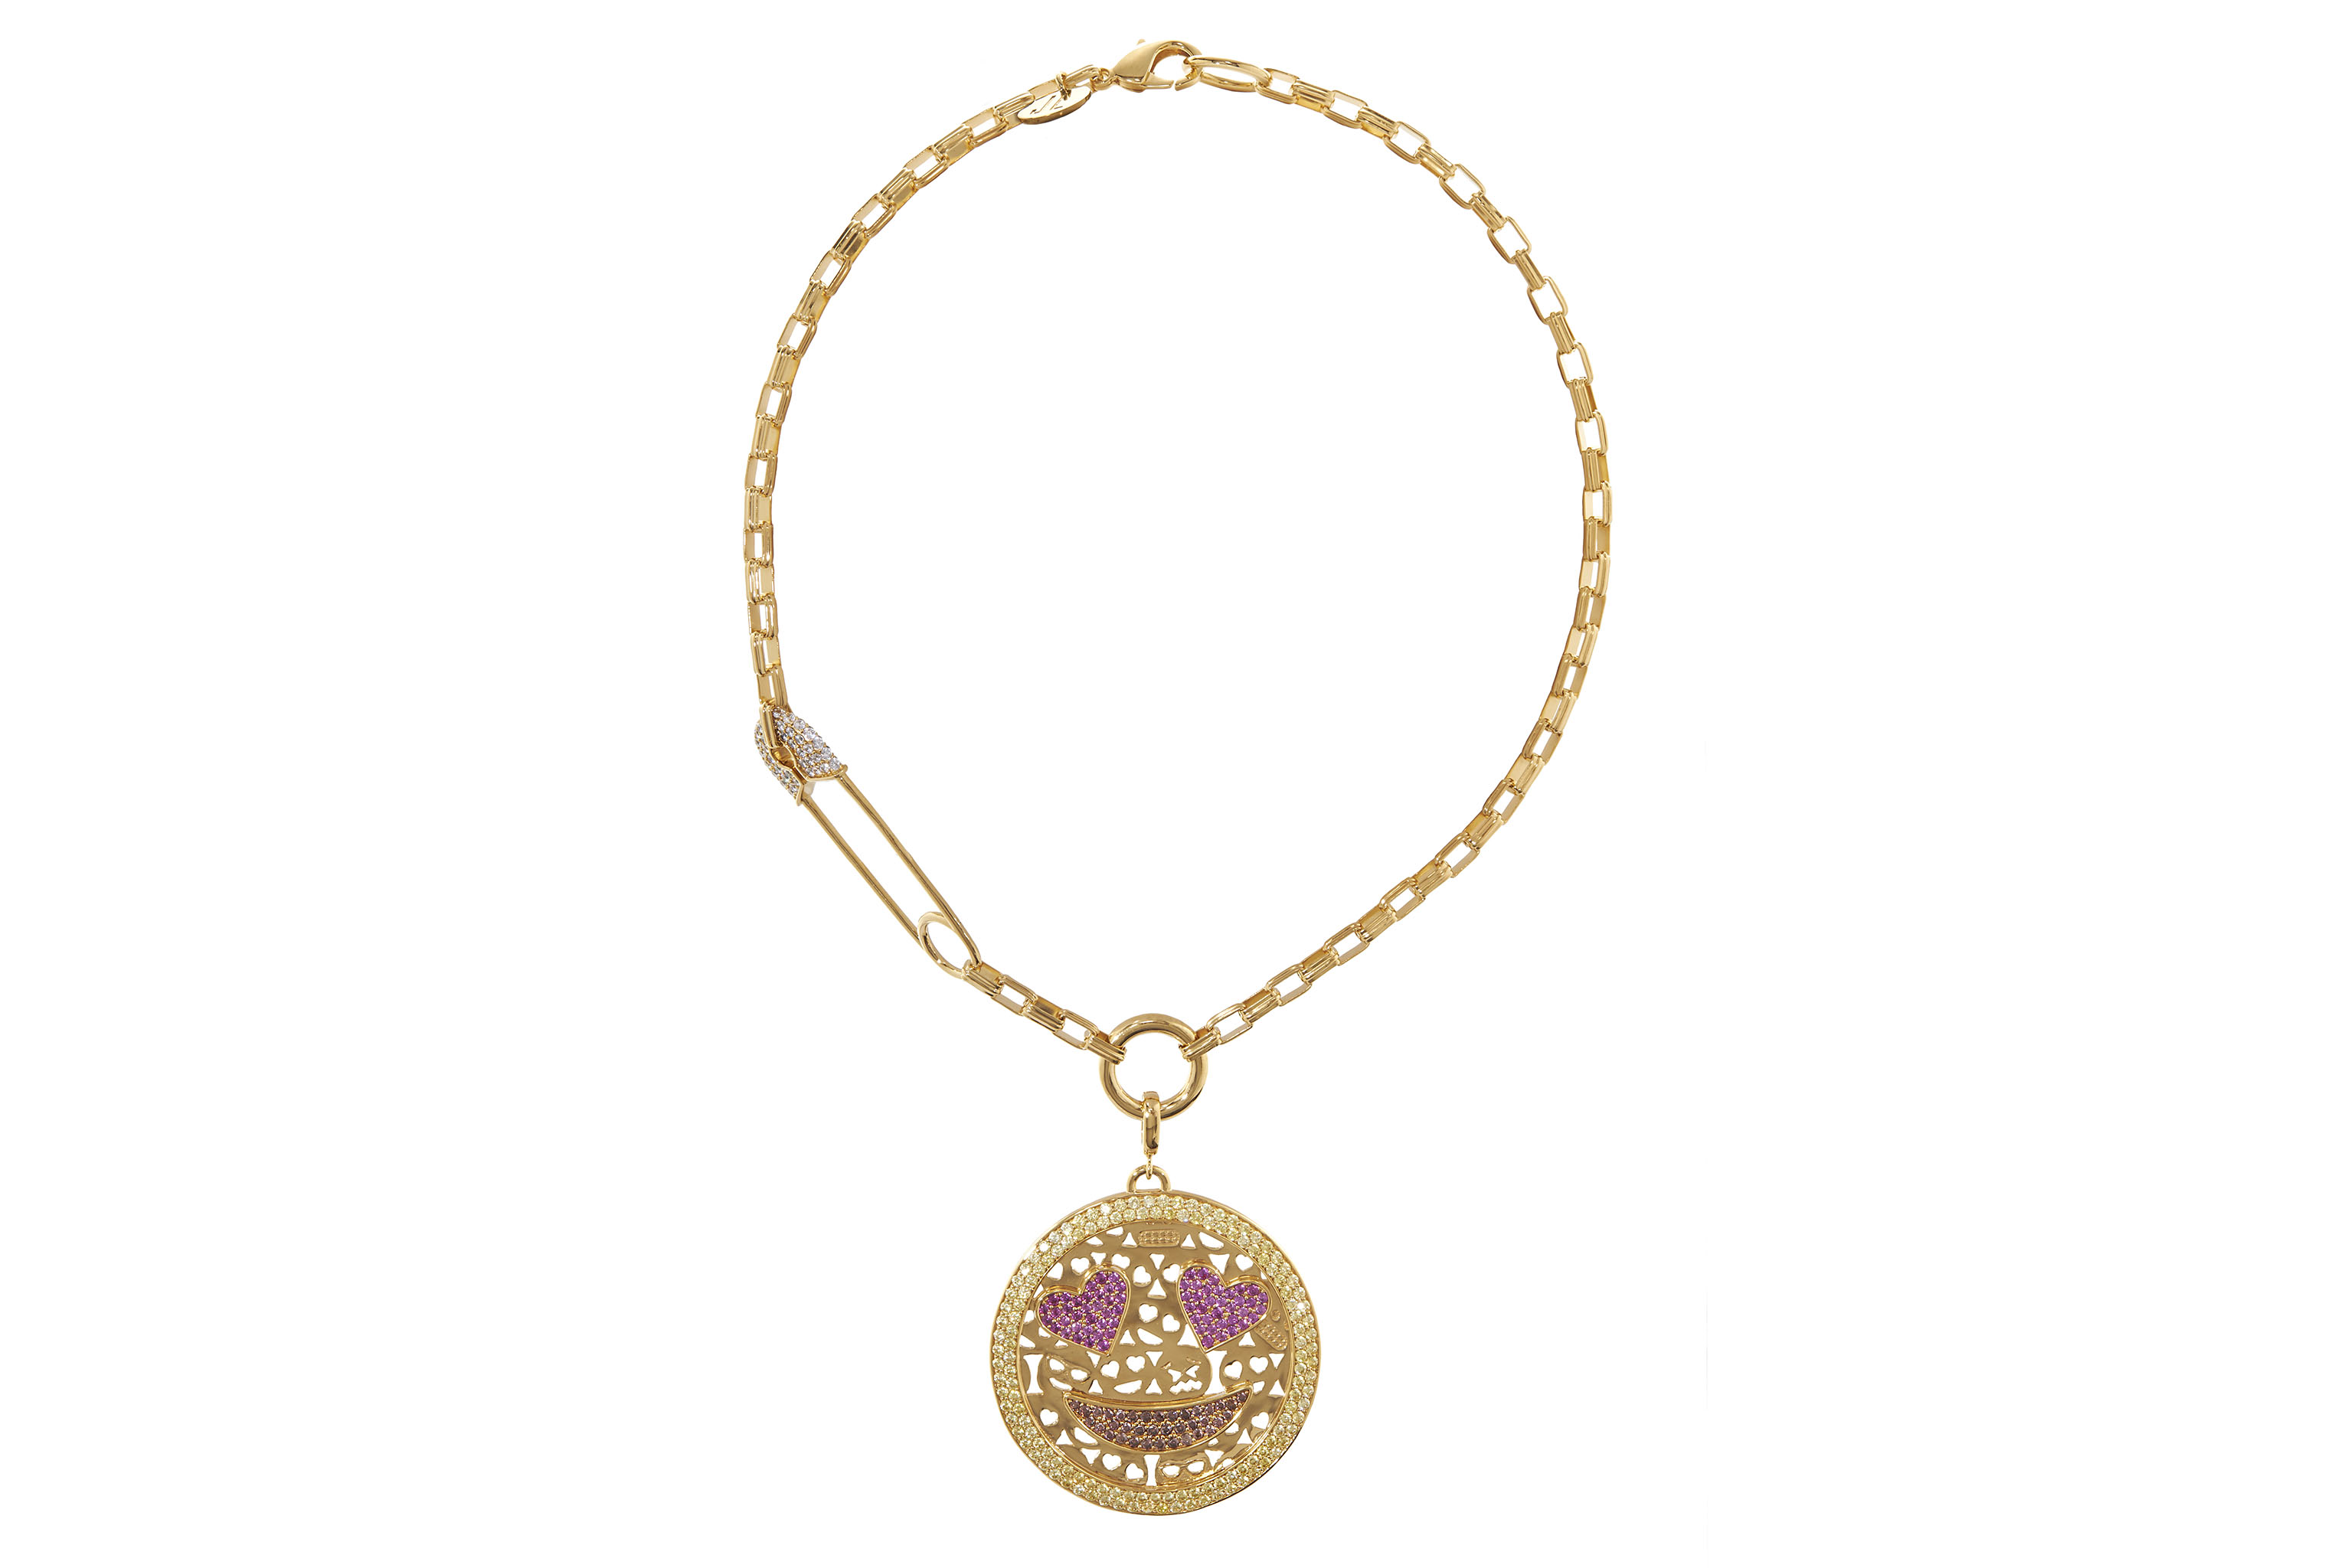 A necklace from the Judith Leiber Jewelry collection.